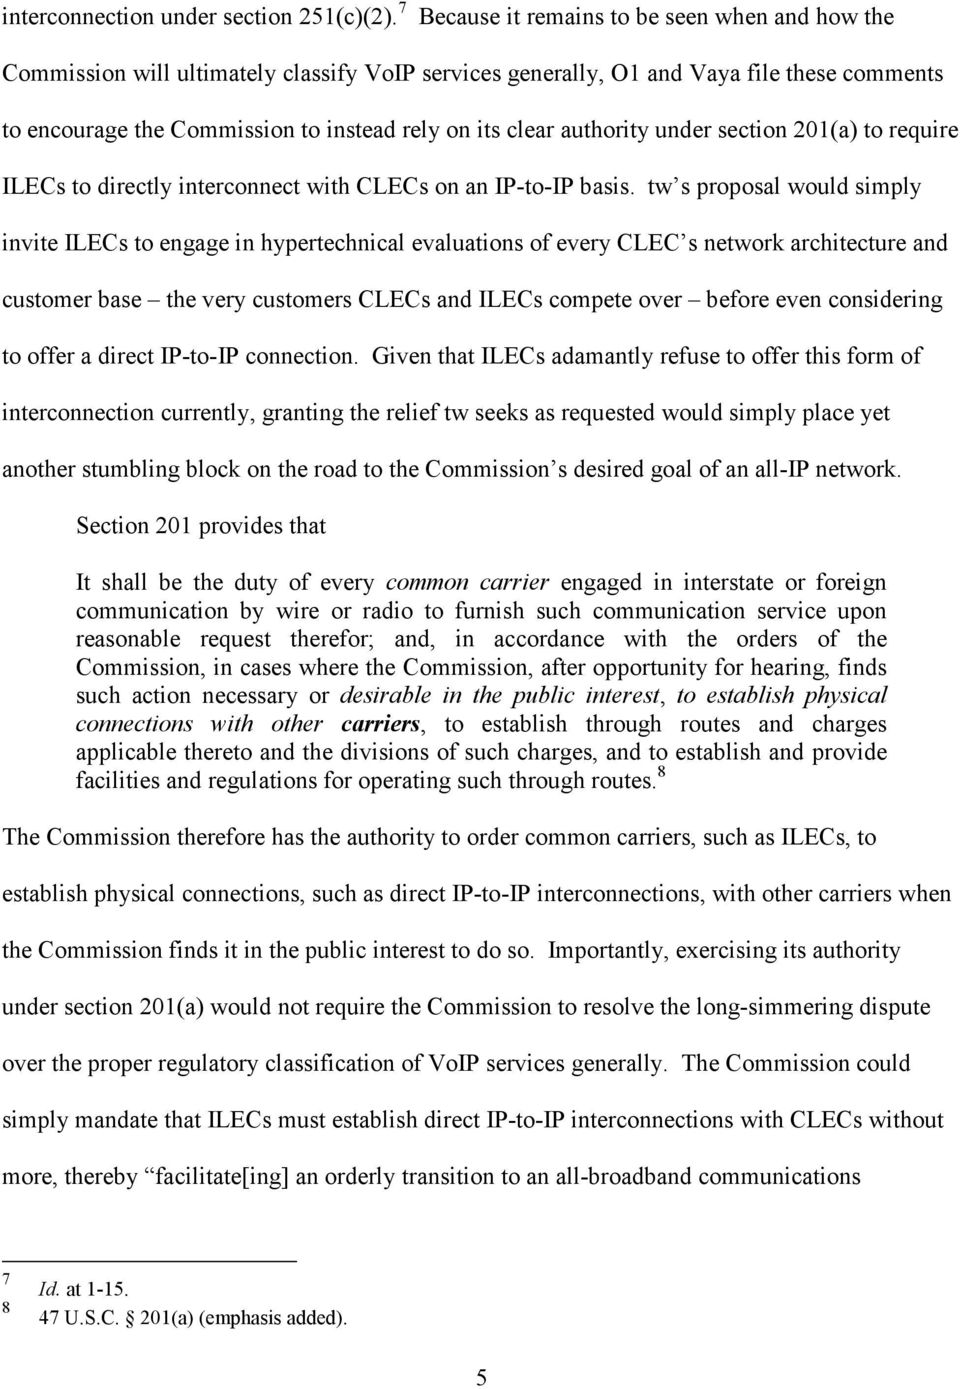 authority under section 201(a) to require ILECs to directly interconnect with CLECs on an IP-to-IP basis.